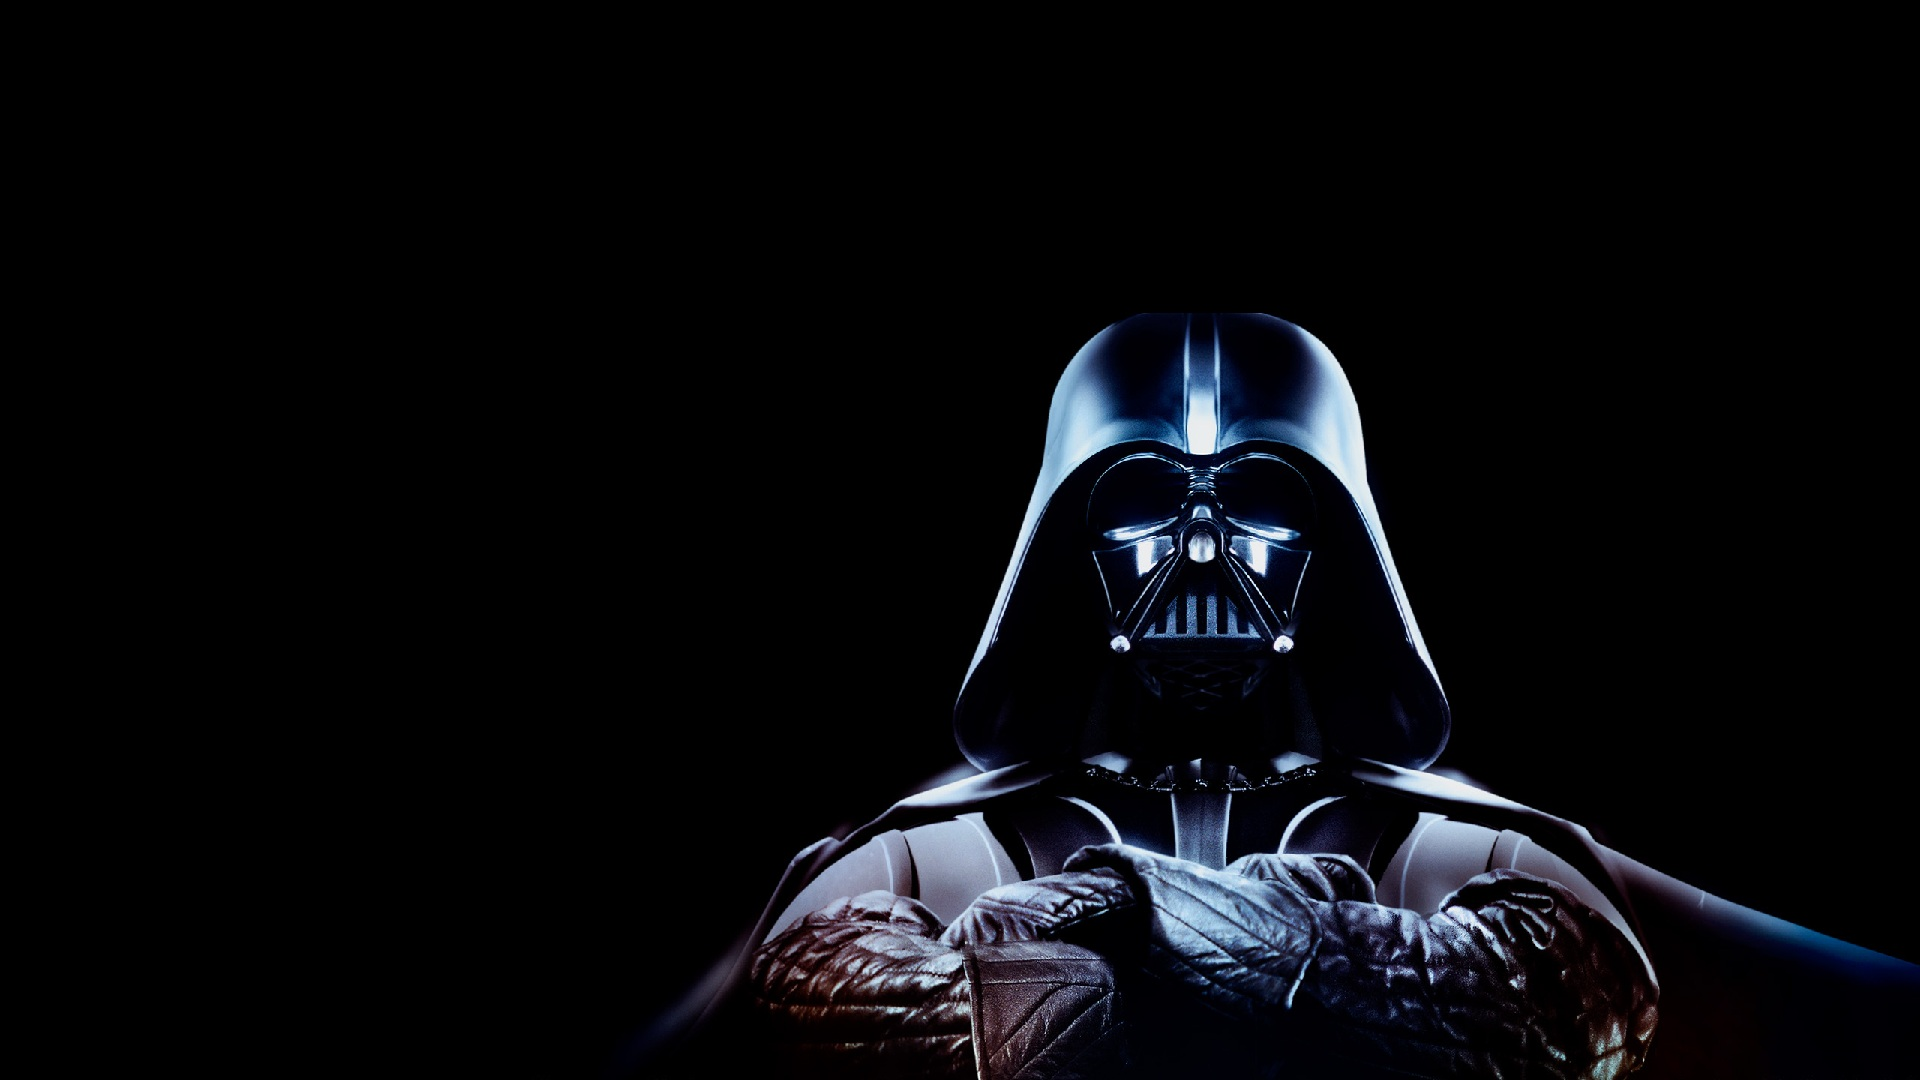 Star Wars Wallpaper 1920x1080 Star Wars Movies Darth Vader Black 1920x1080